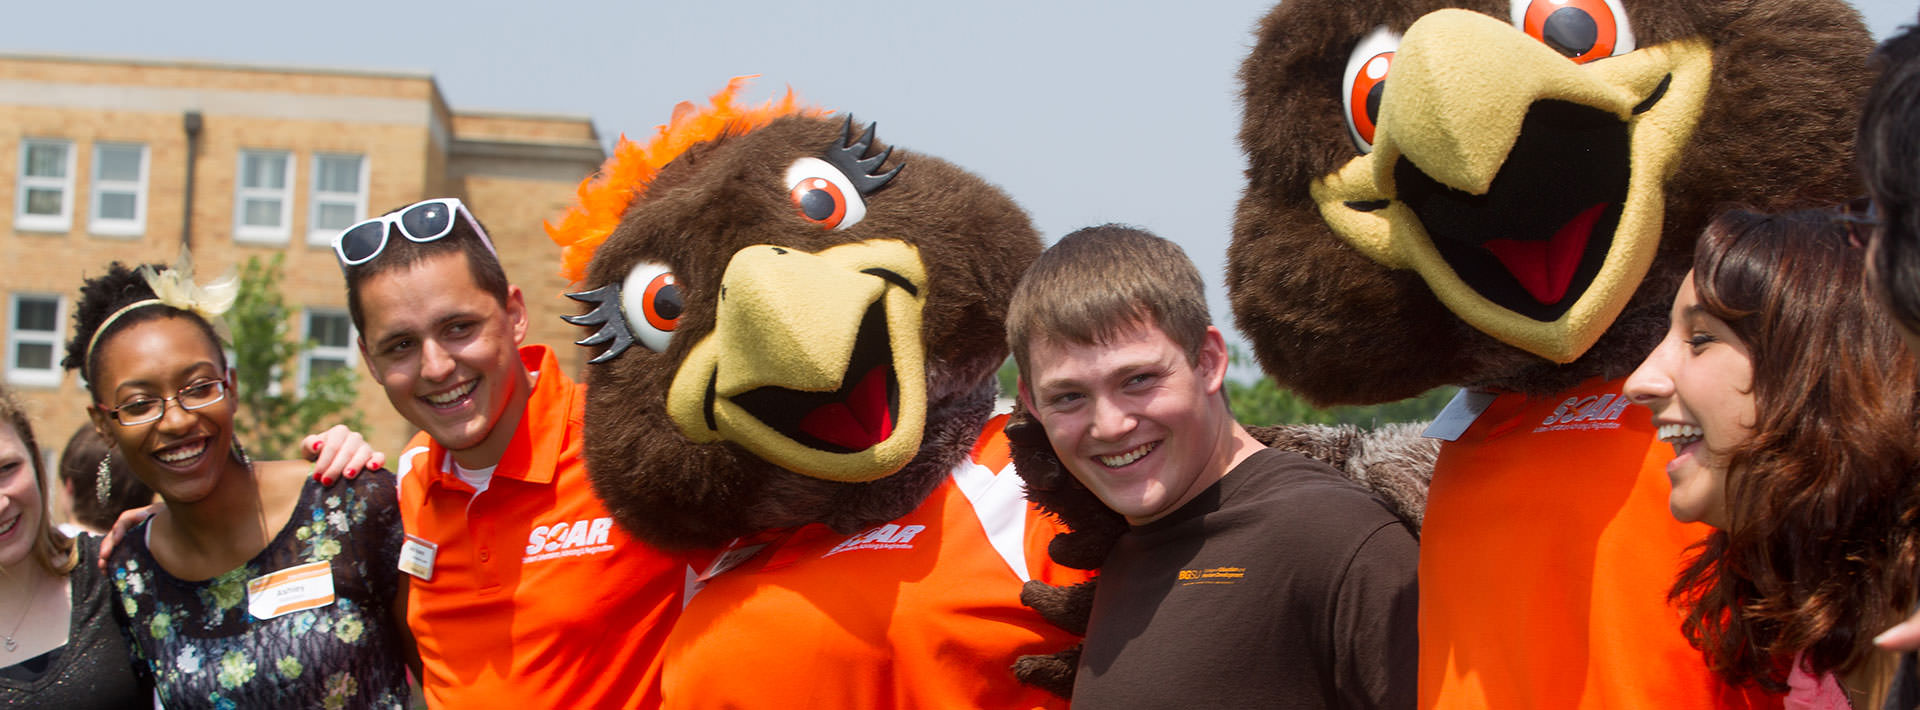 SOAR leaders mascots 80e0855